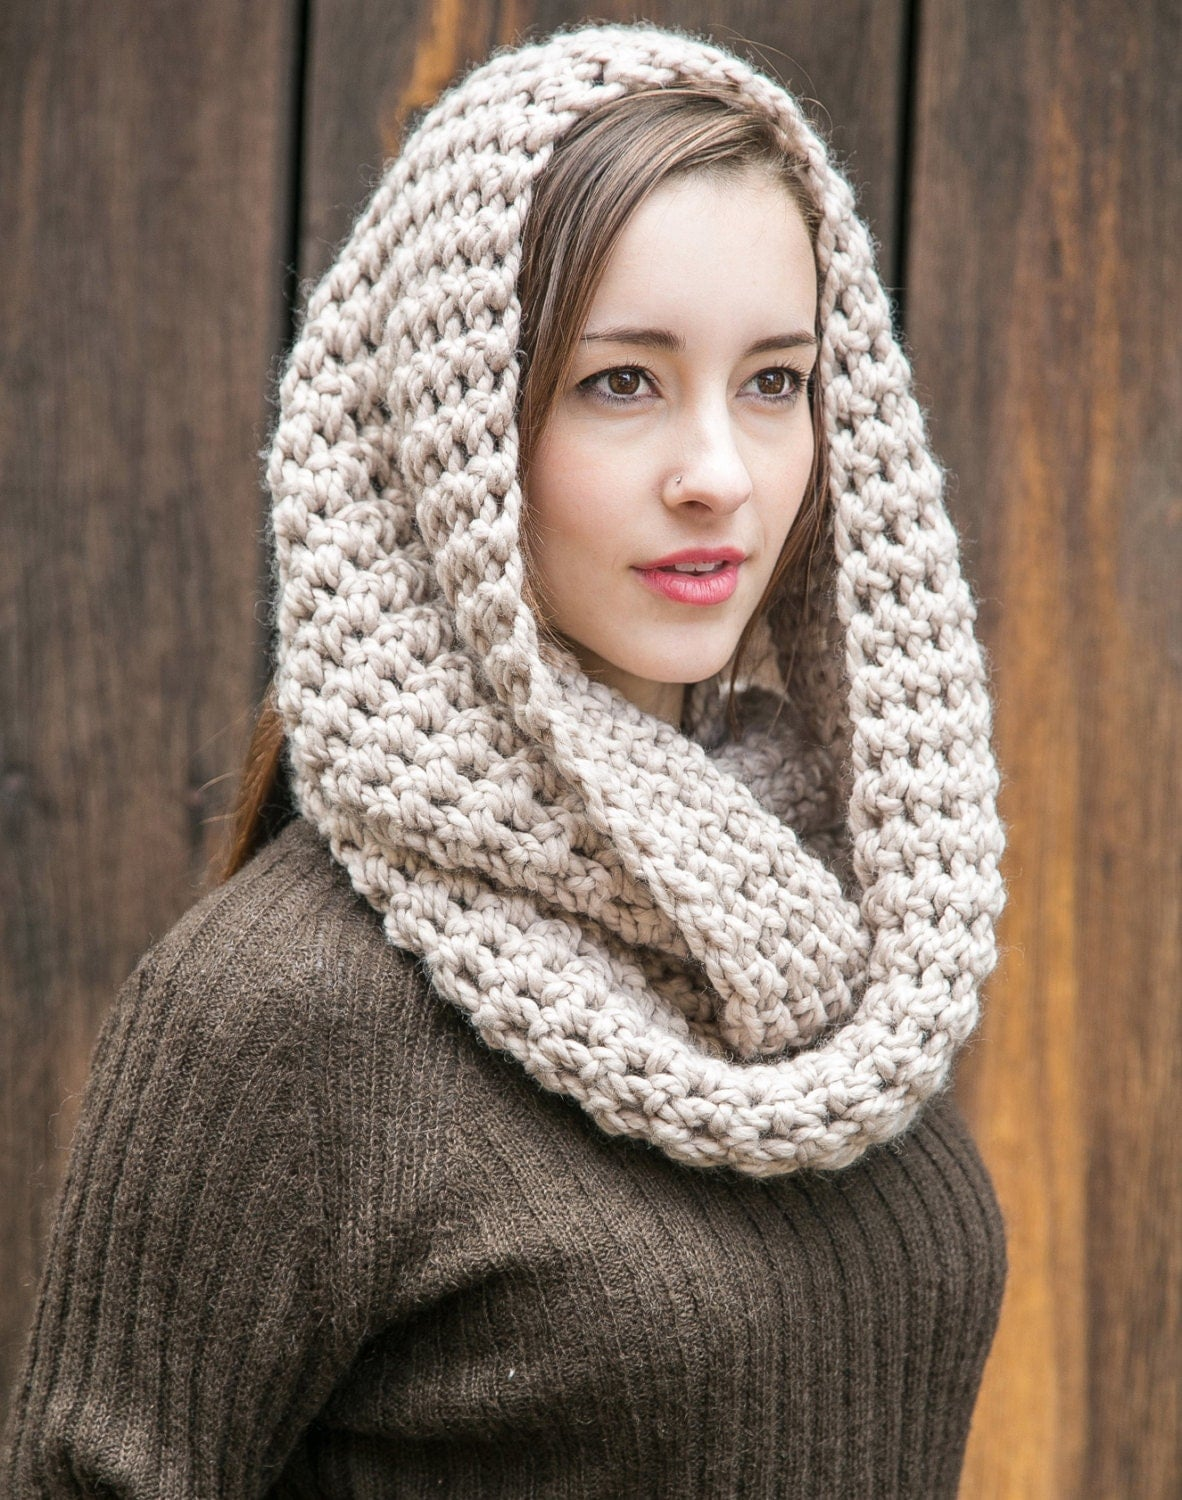 Infinity Scarves Winter weather is no match for one of these cute infinity scarf patterns. Wrapping one of these scarves around your neck is the best way to stay warm and look great in any season.